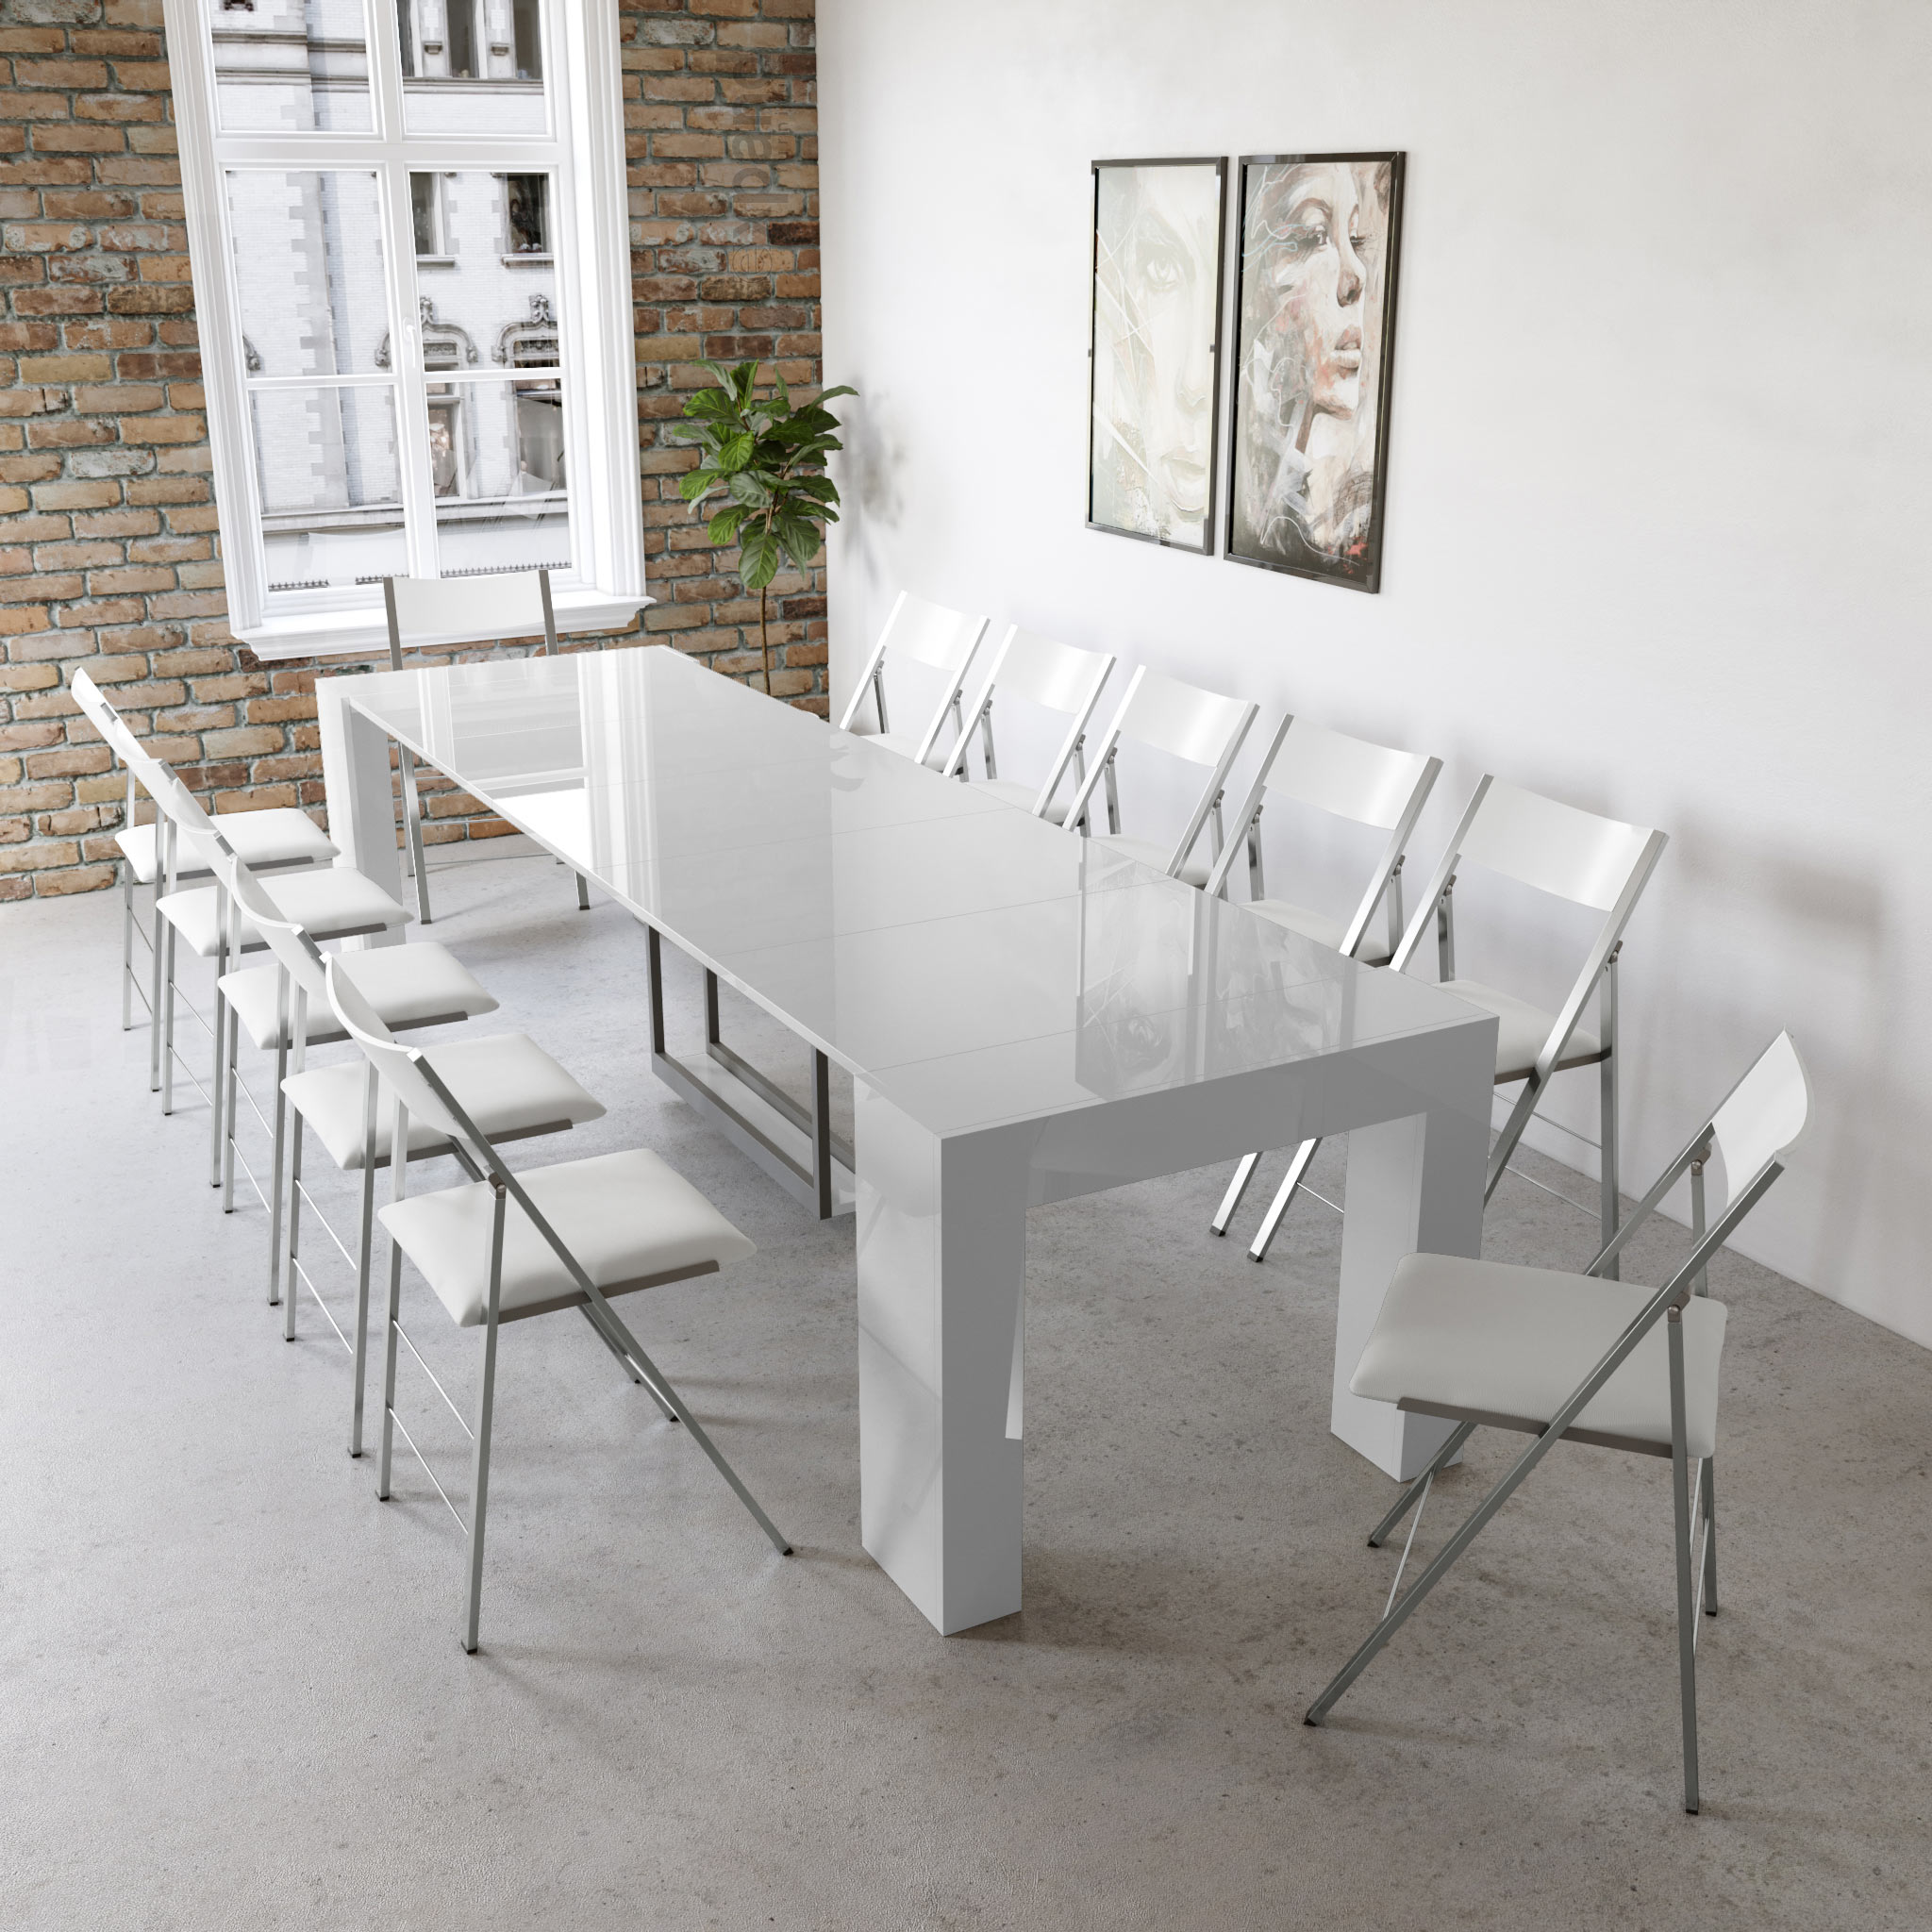 Terrific Cubist Table With Built In Extension Storage Download Free Architecture Designs Embacsunscenecom